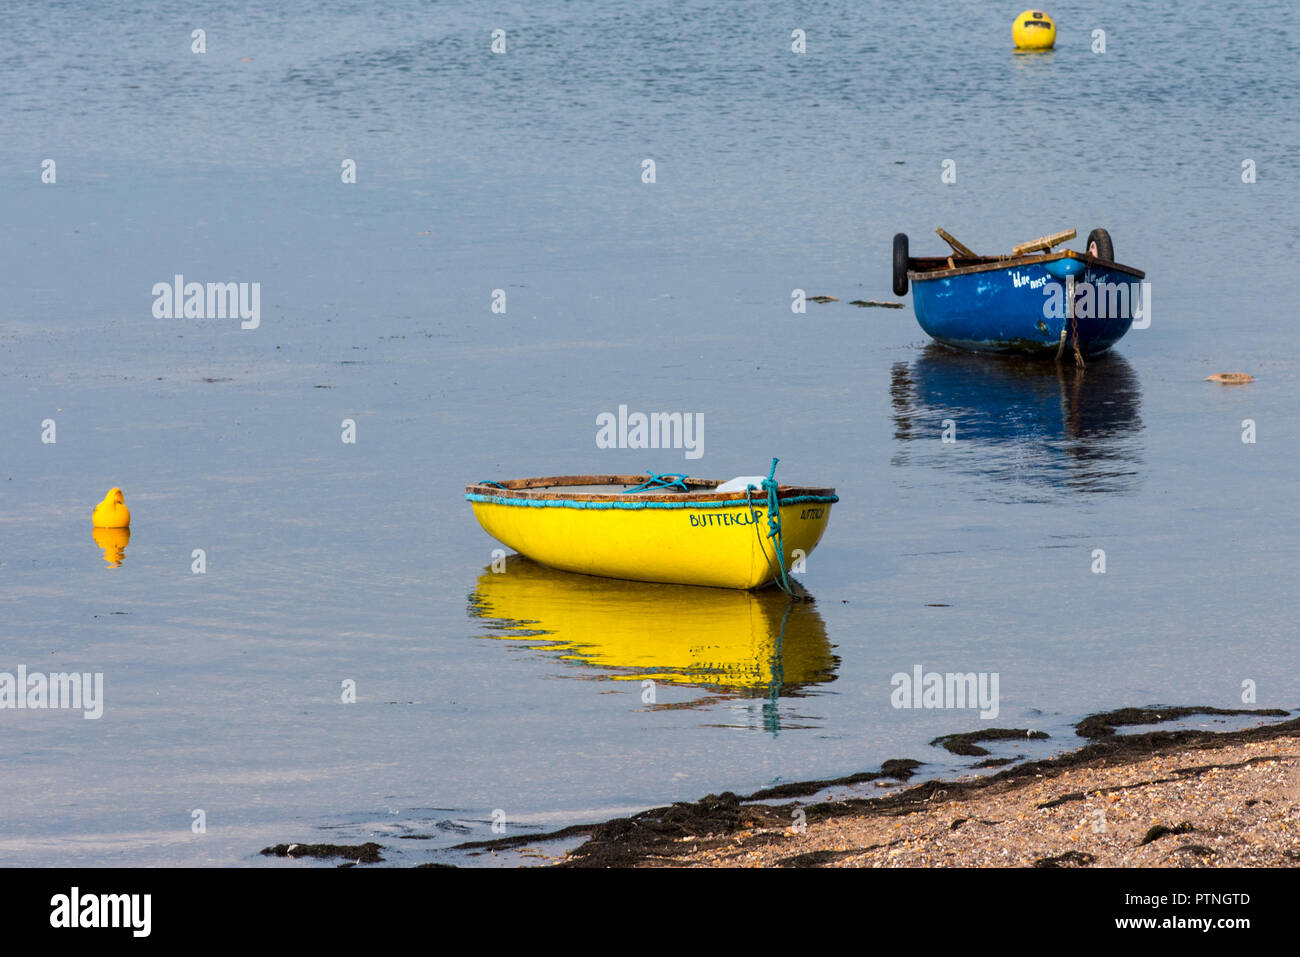 Coloured boats at Shelly Beach,Exmouth, Devon, UK. - Stock Image